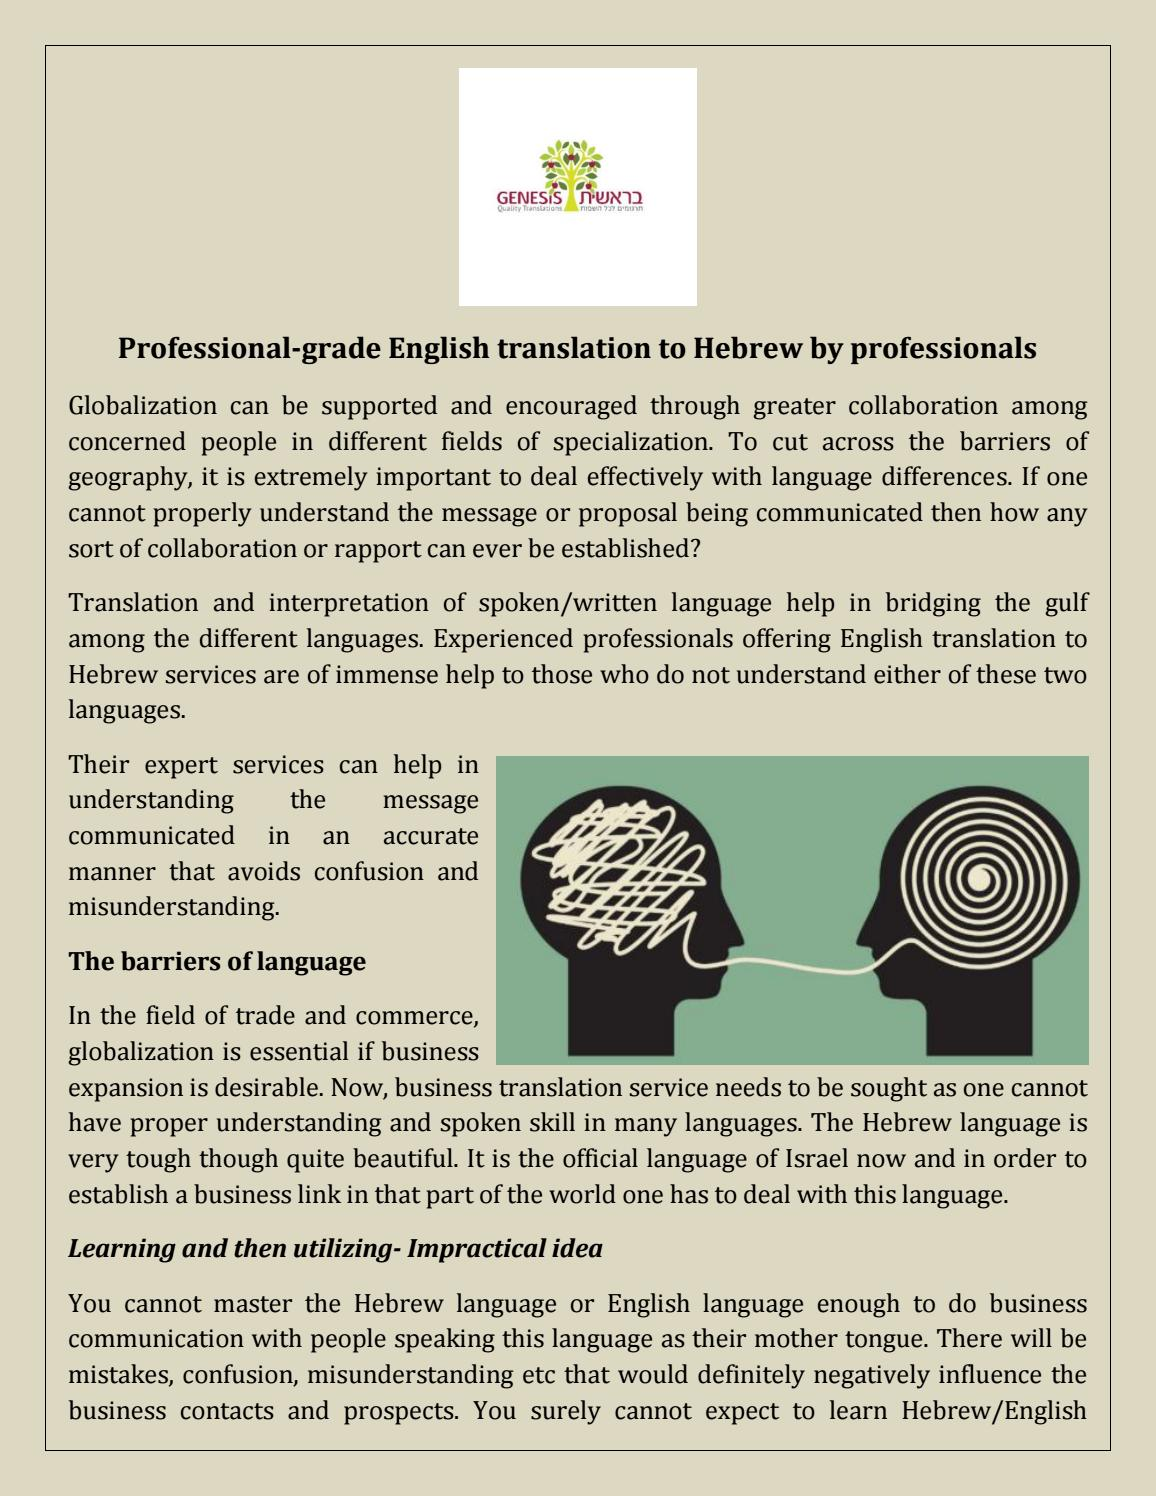 Professional-grade English translation to Hebrew by